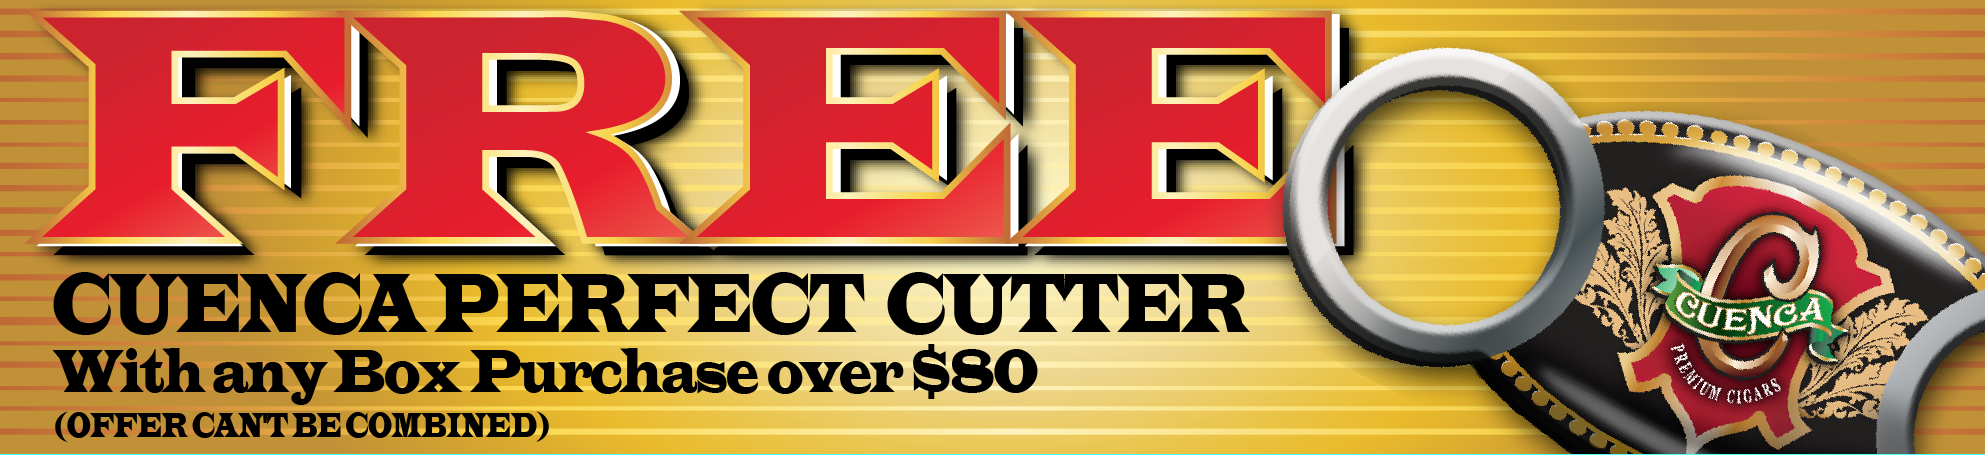 free cuenca perfect cutter when you spend over 80